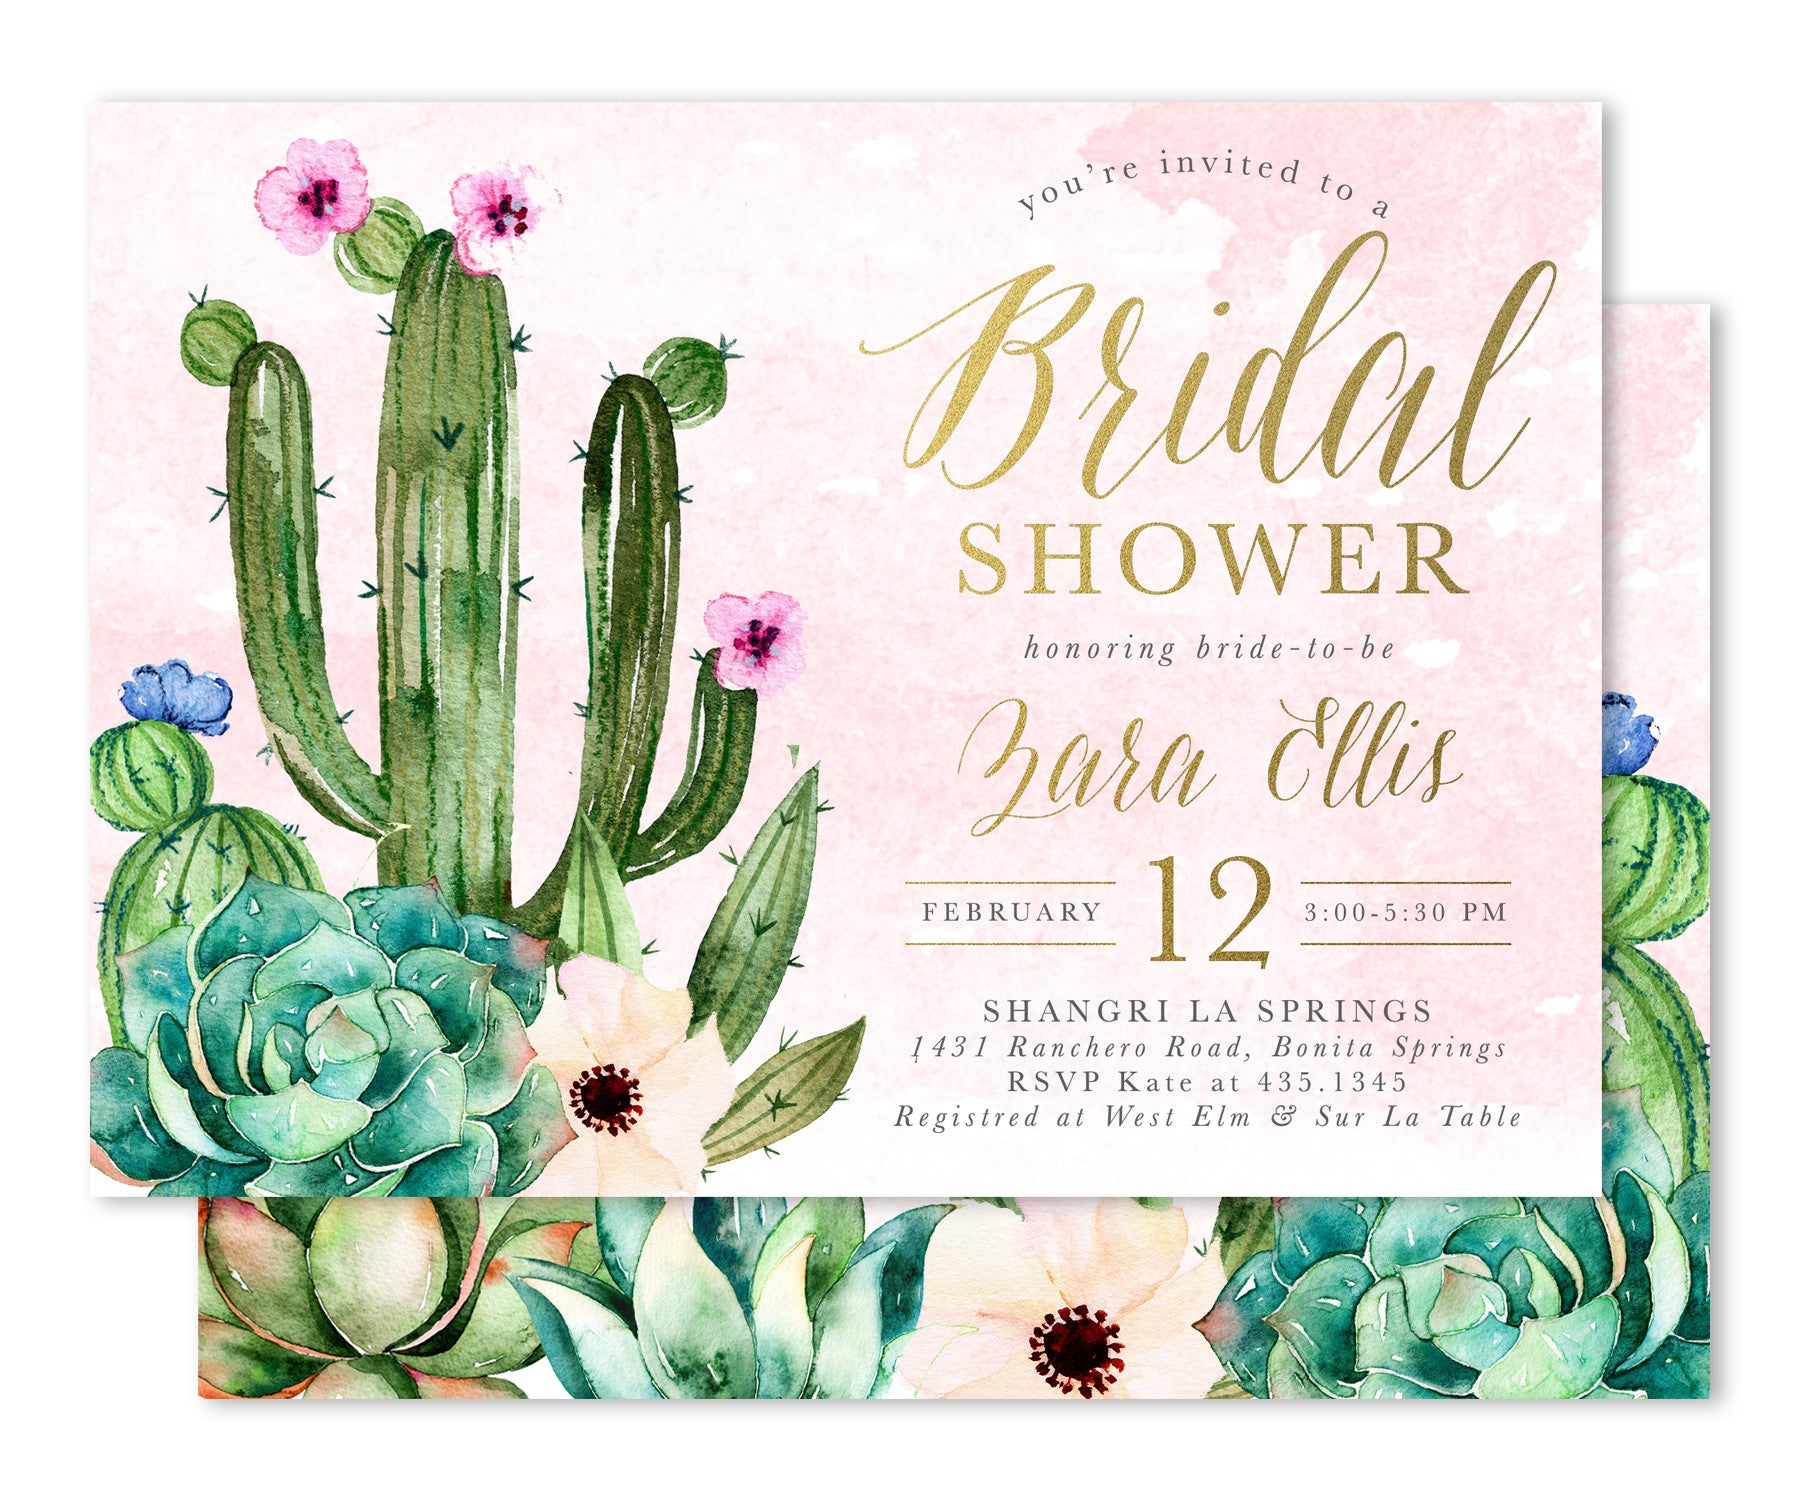 products marsala invites florals blush front invite greenery pink burgundy boho odette bridal invitation shower